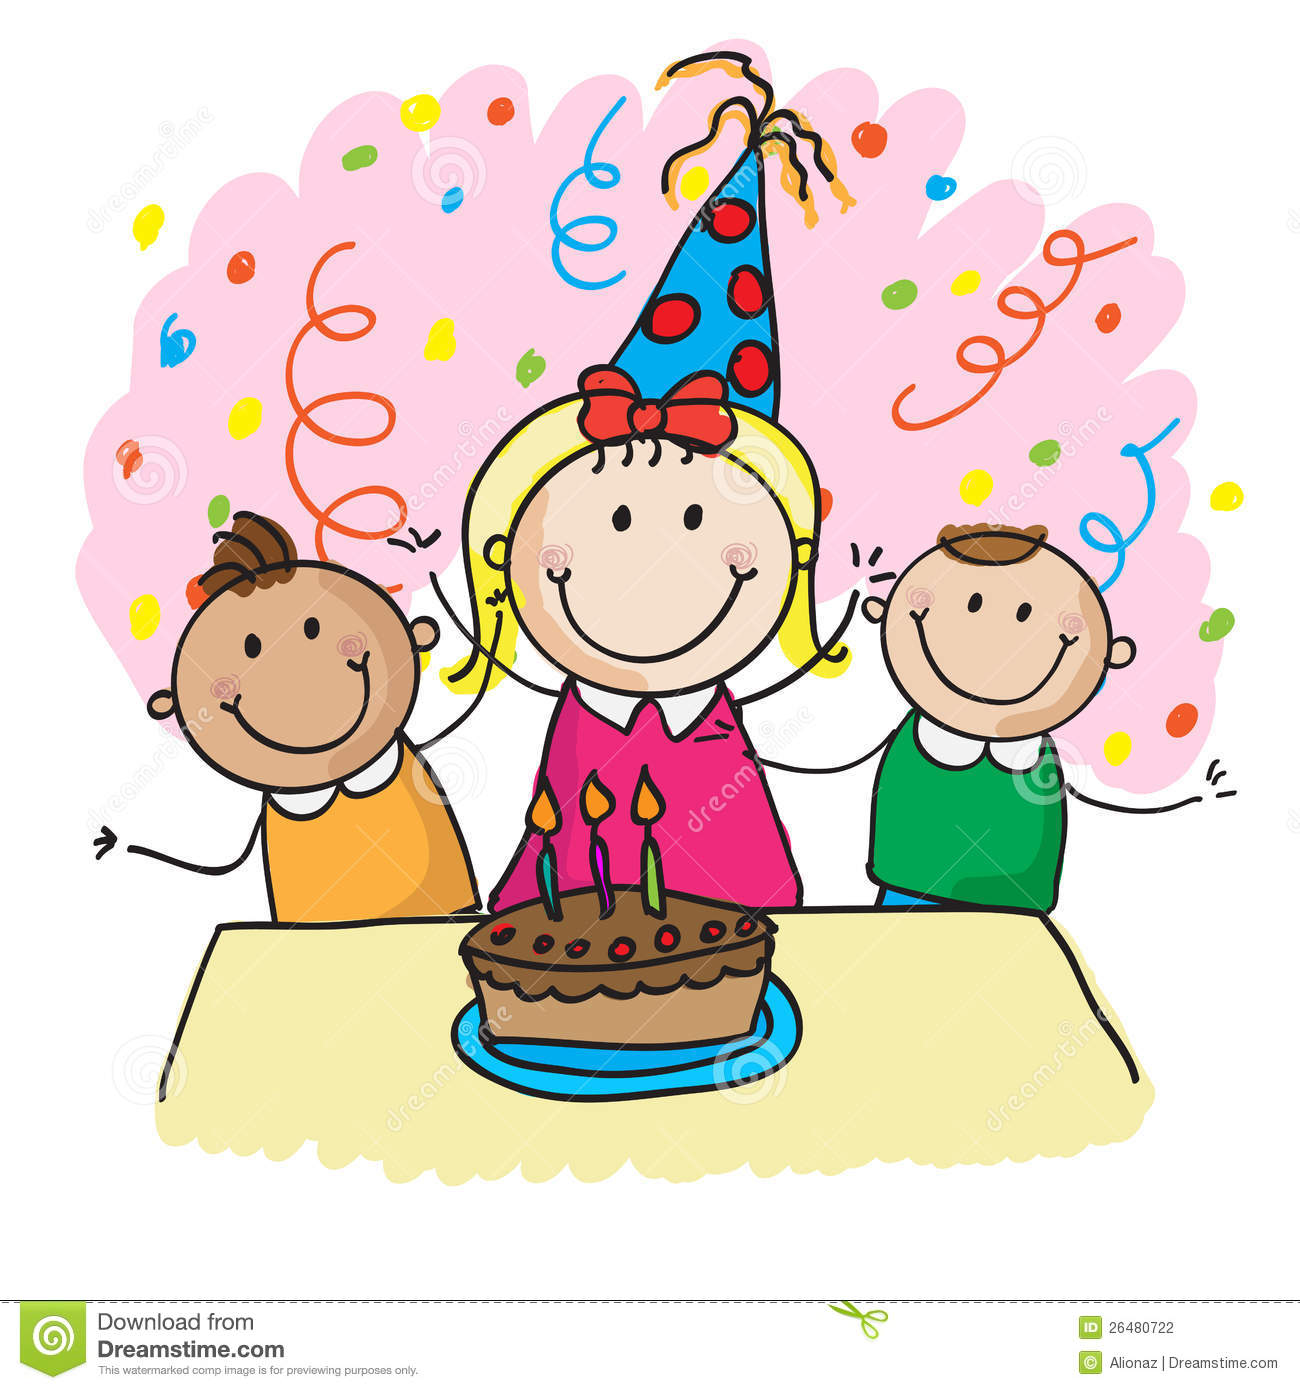 birthday party clipart free ; birthday-party-clipart-birthday-party-images-clip-art-1300_1390